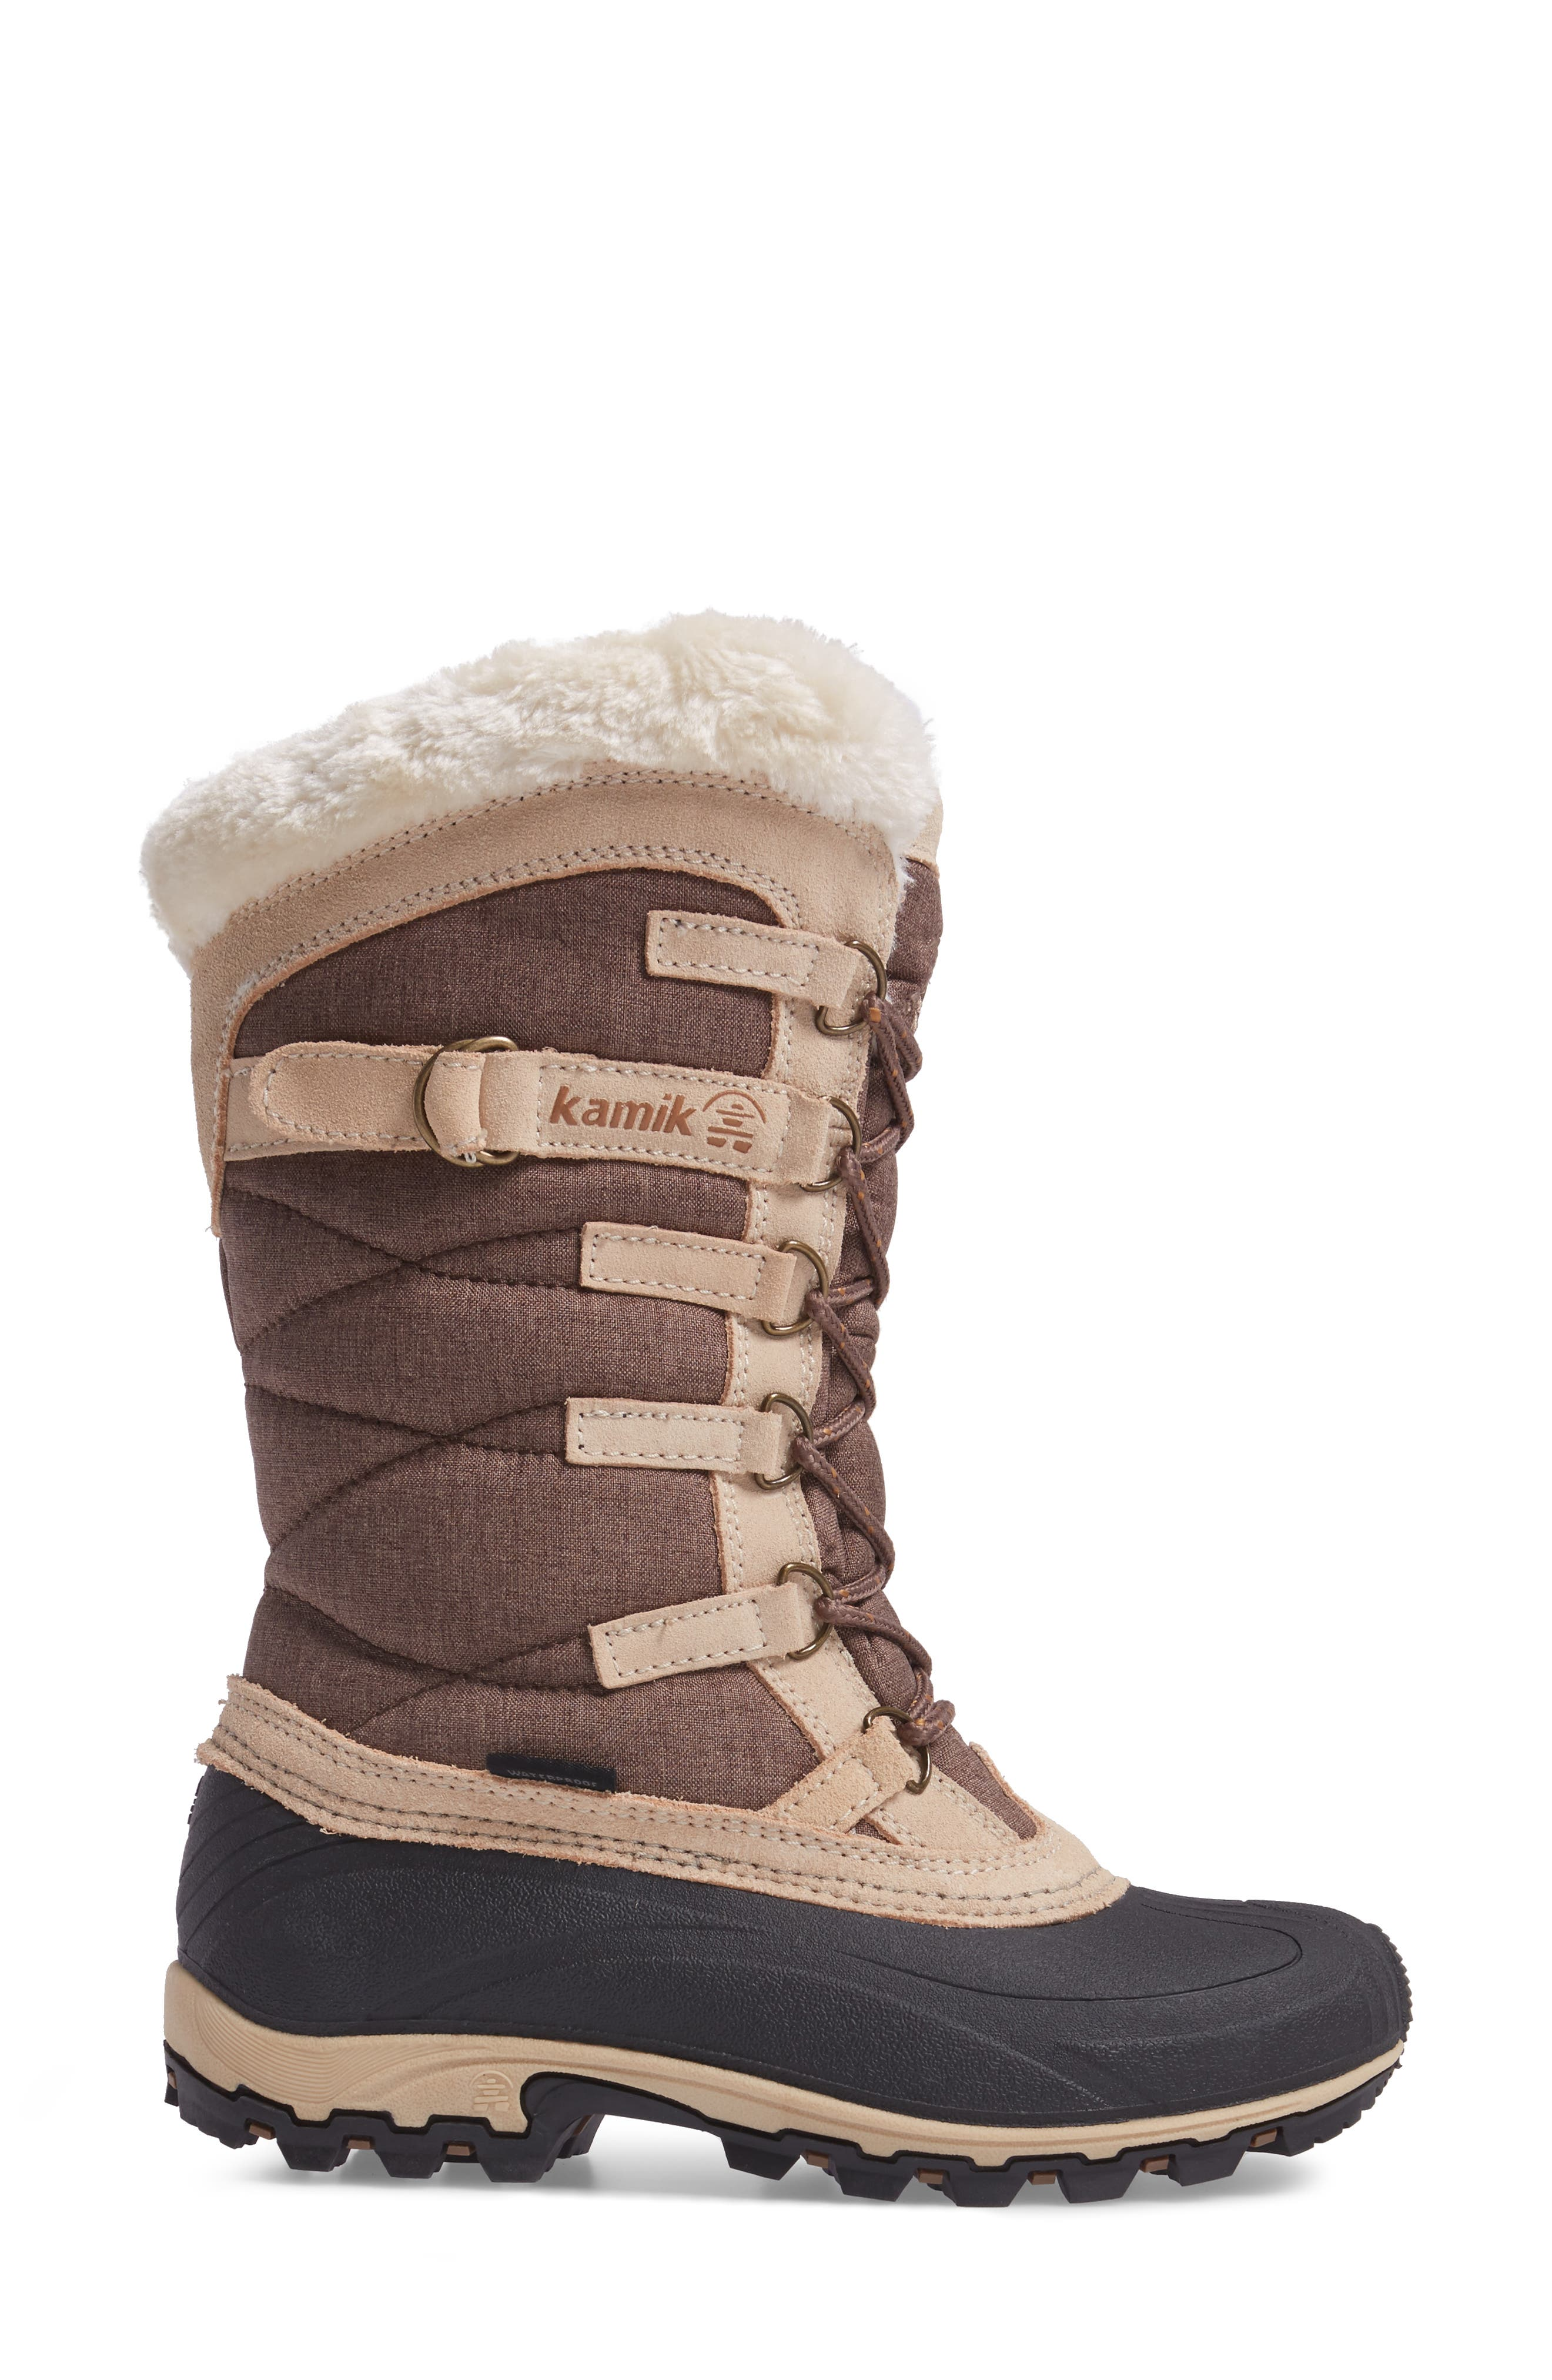 Snowvalley Waterproof Boot with Faux Fur Cuff,                             Alternate thumbnail 3, color,                             BROWN FABRIC